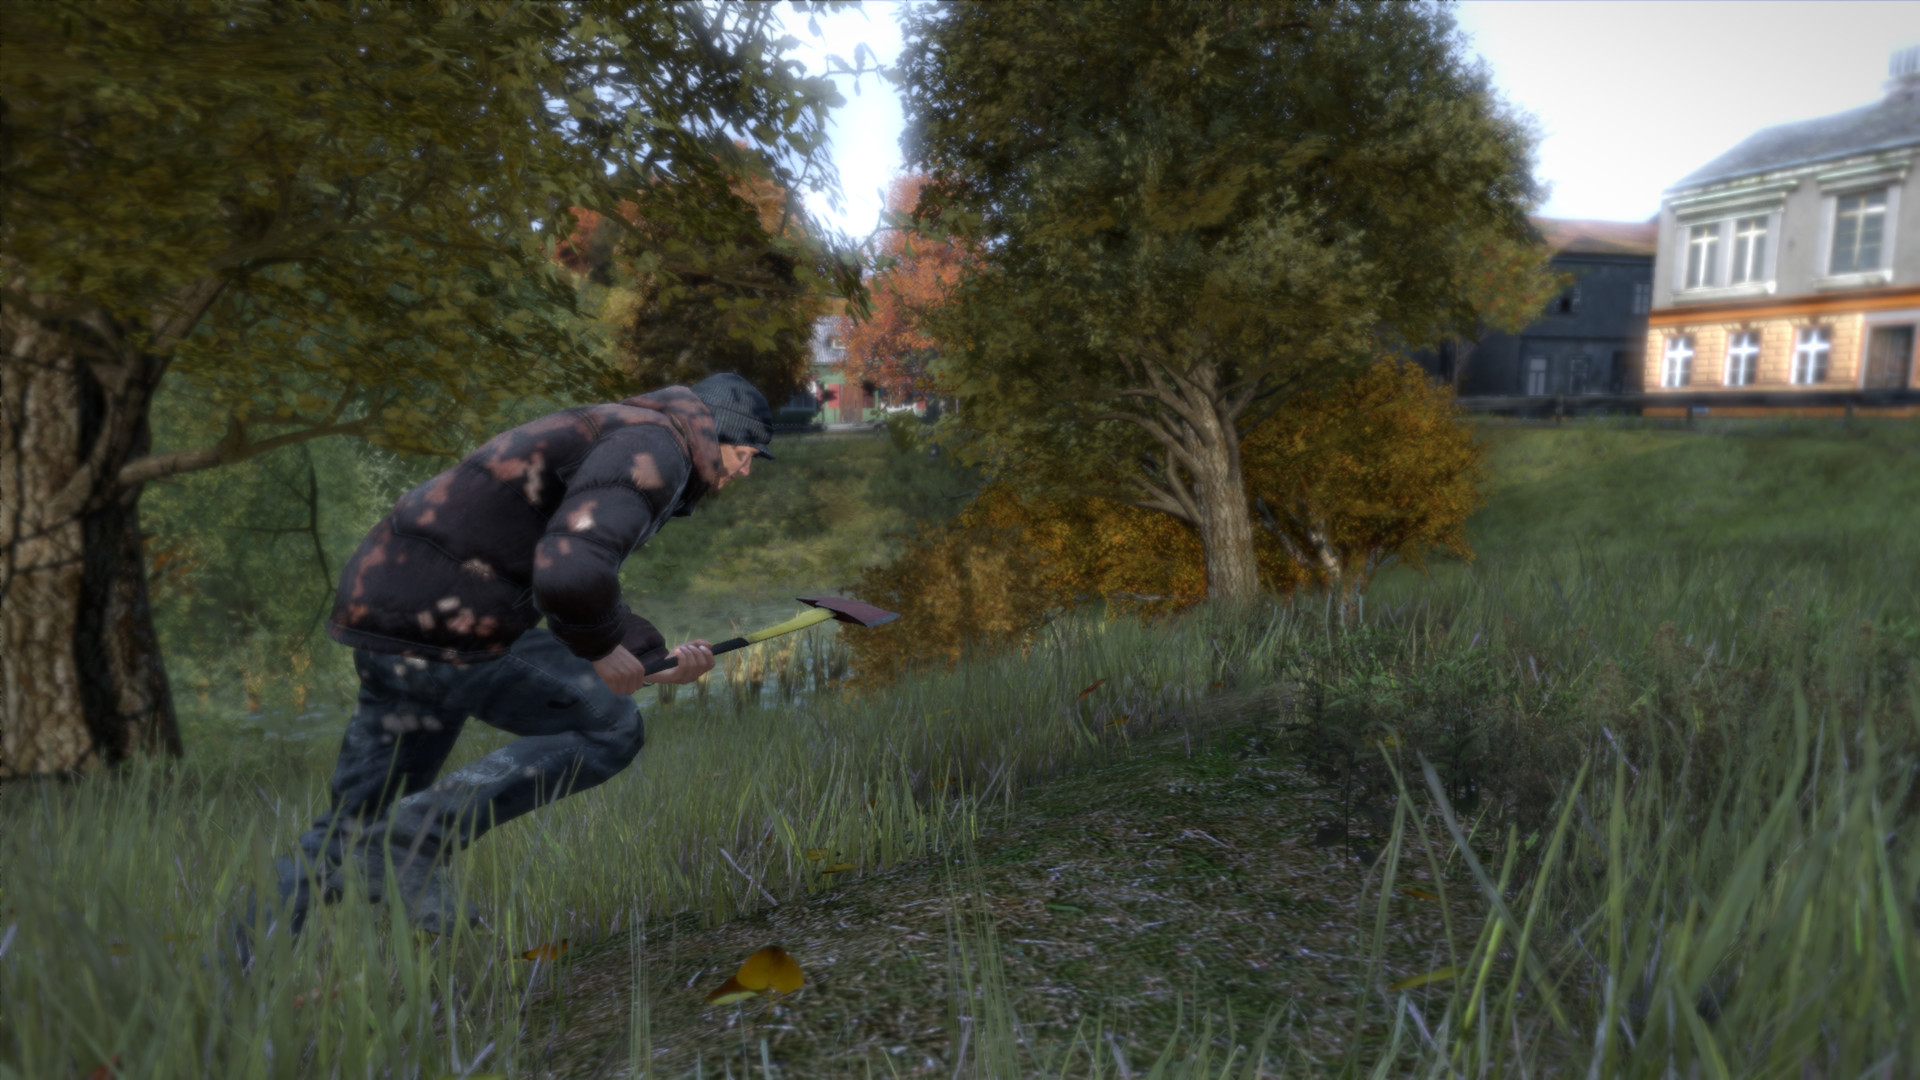 Bohemia sells 172K copies of DayZ on launch day for $5.17M in sales